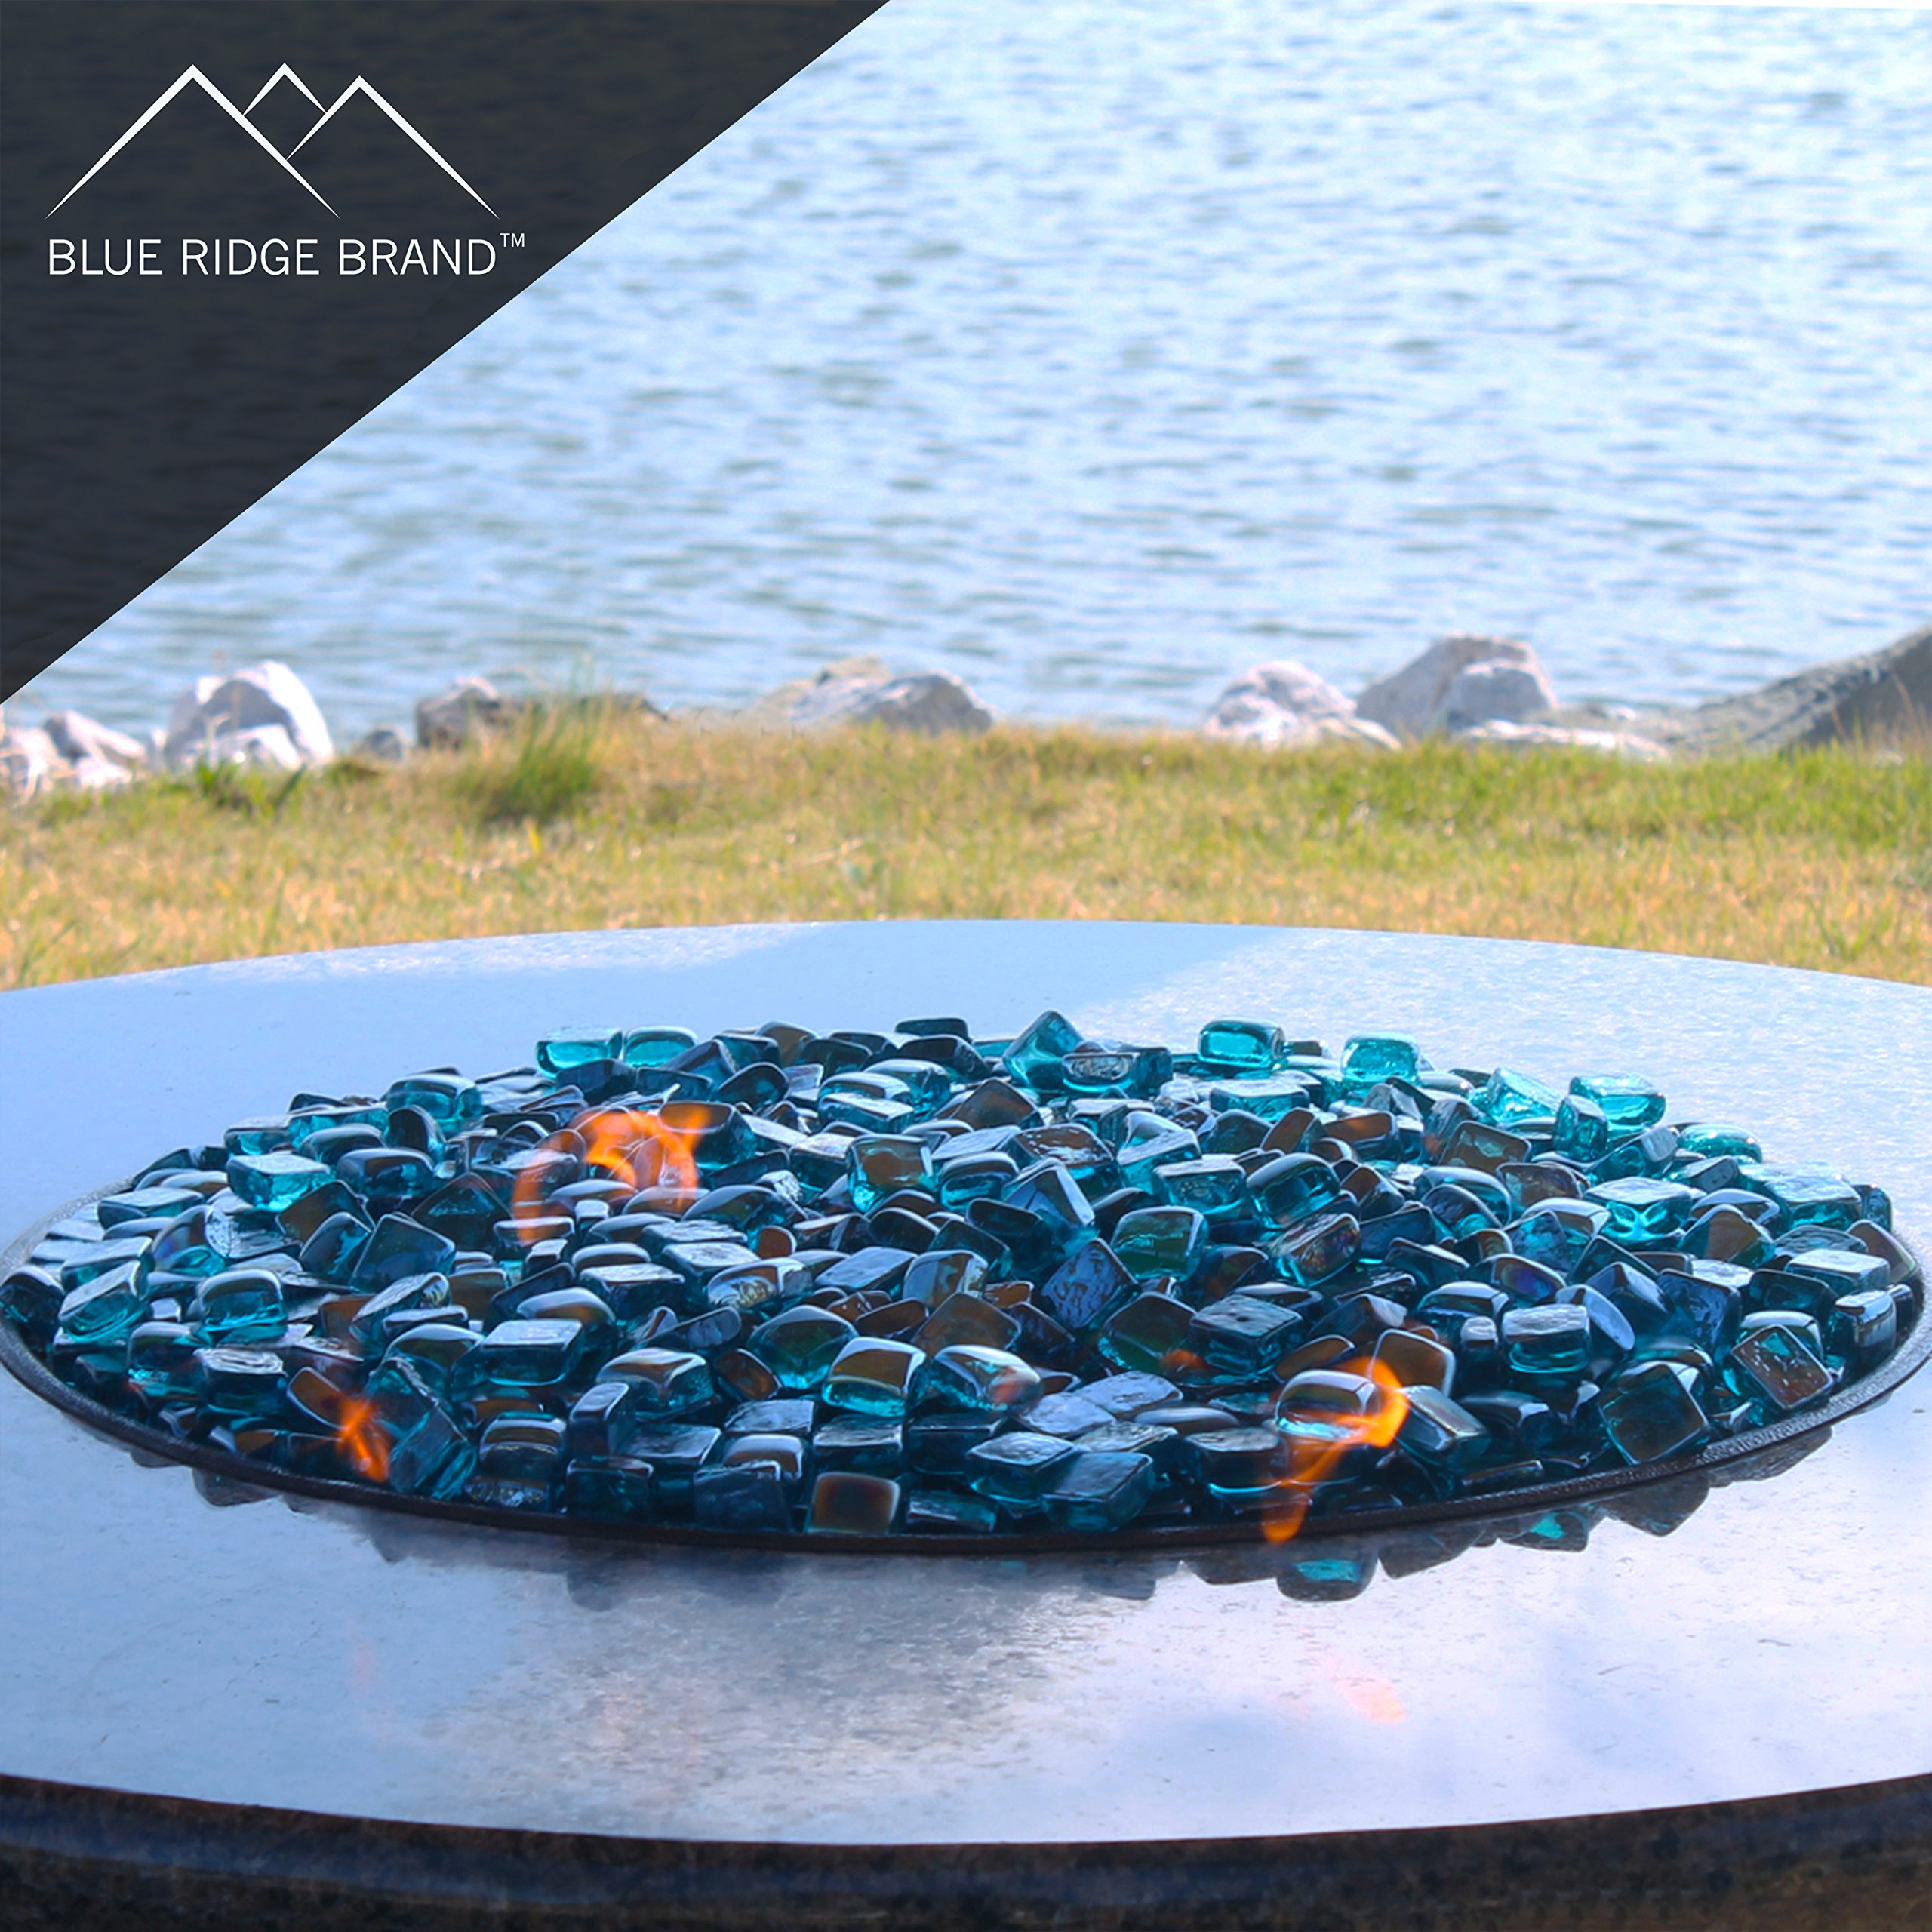 Blue Ridge Brand trade; Aqua Reflective Fire Glass Cubes - 20-Pound Professional Grade Fire Pit Glass - 3/4'' Reflective Glass for Fire Pit and Landscaping by Blue Ridge Brand (Image #4)